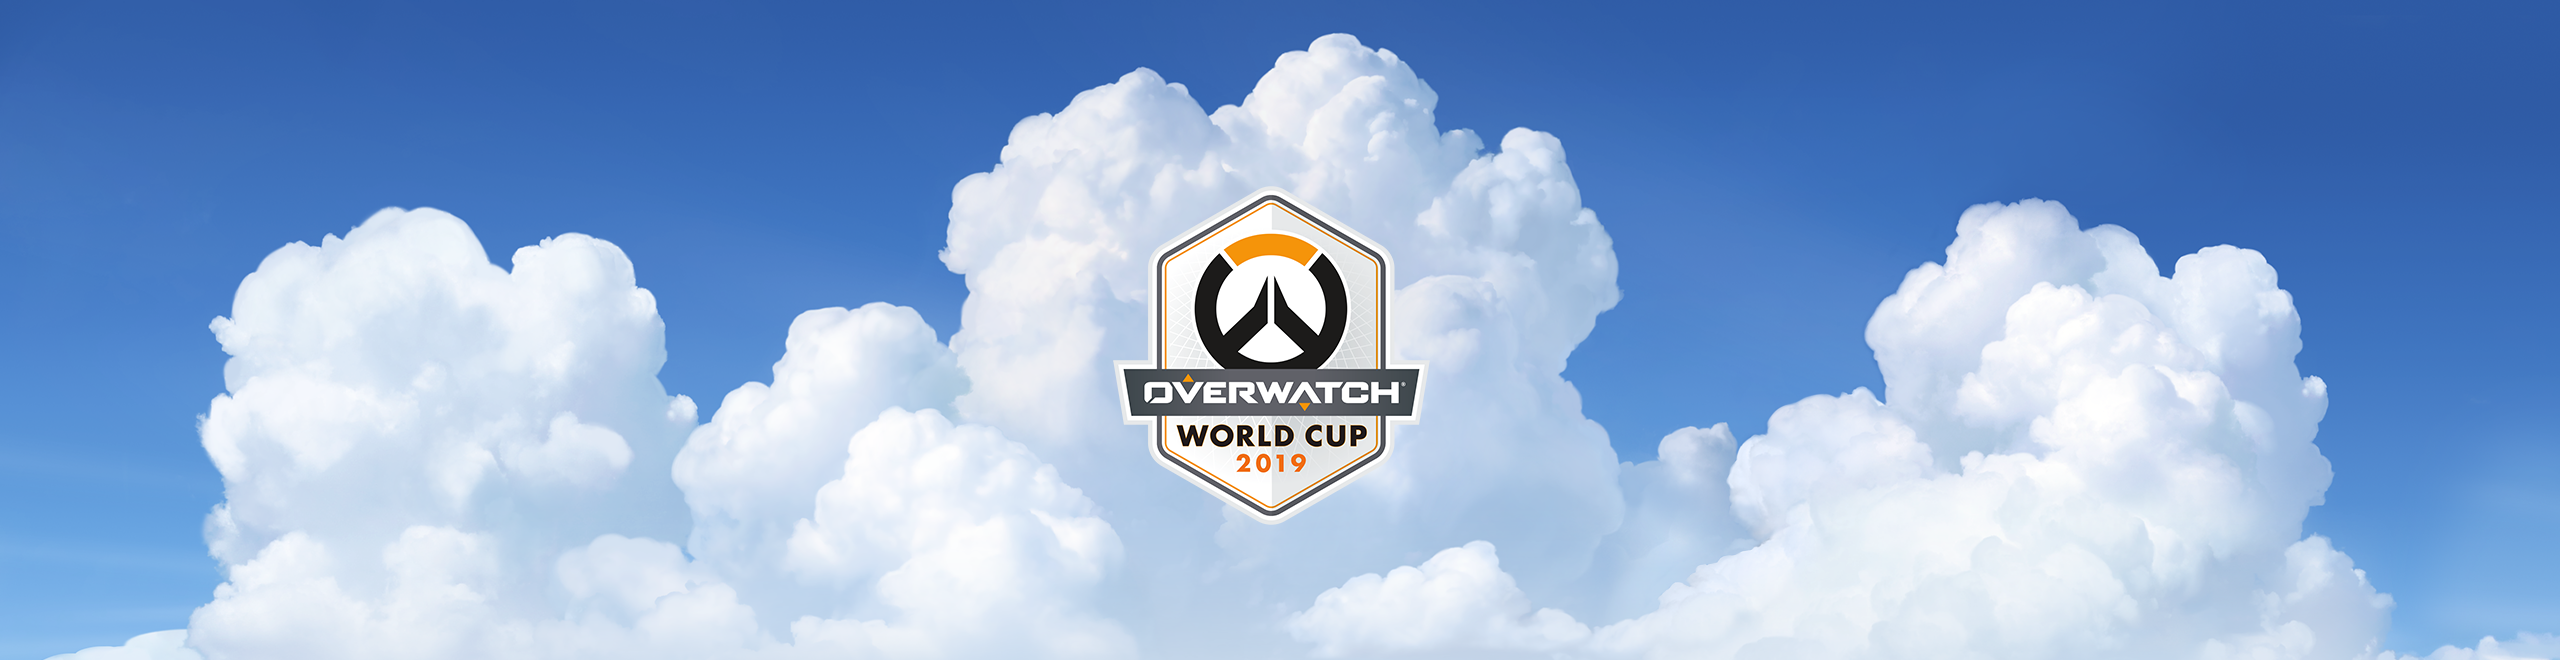 Gear Up to Show Up for the 2019 Overwatch World Cup